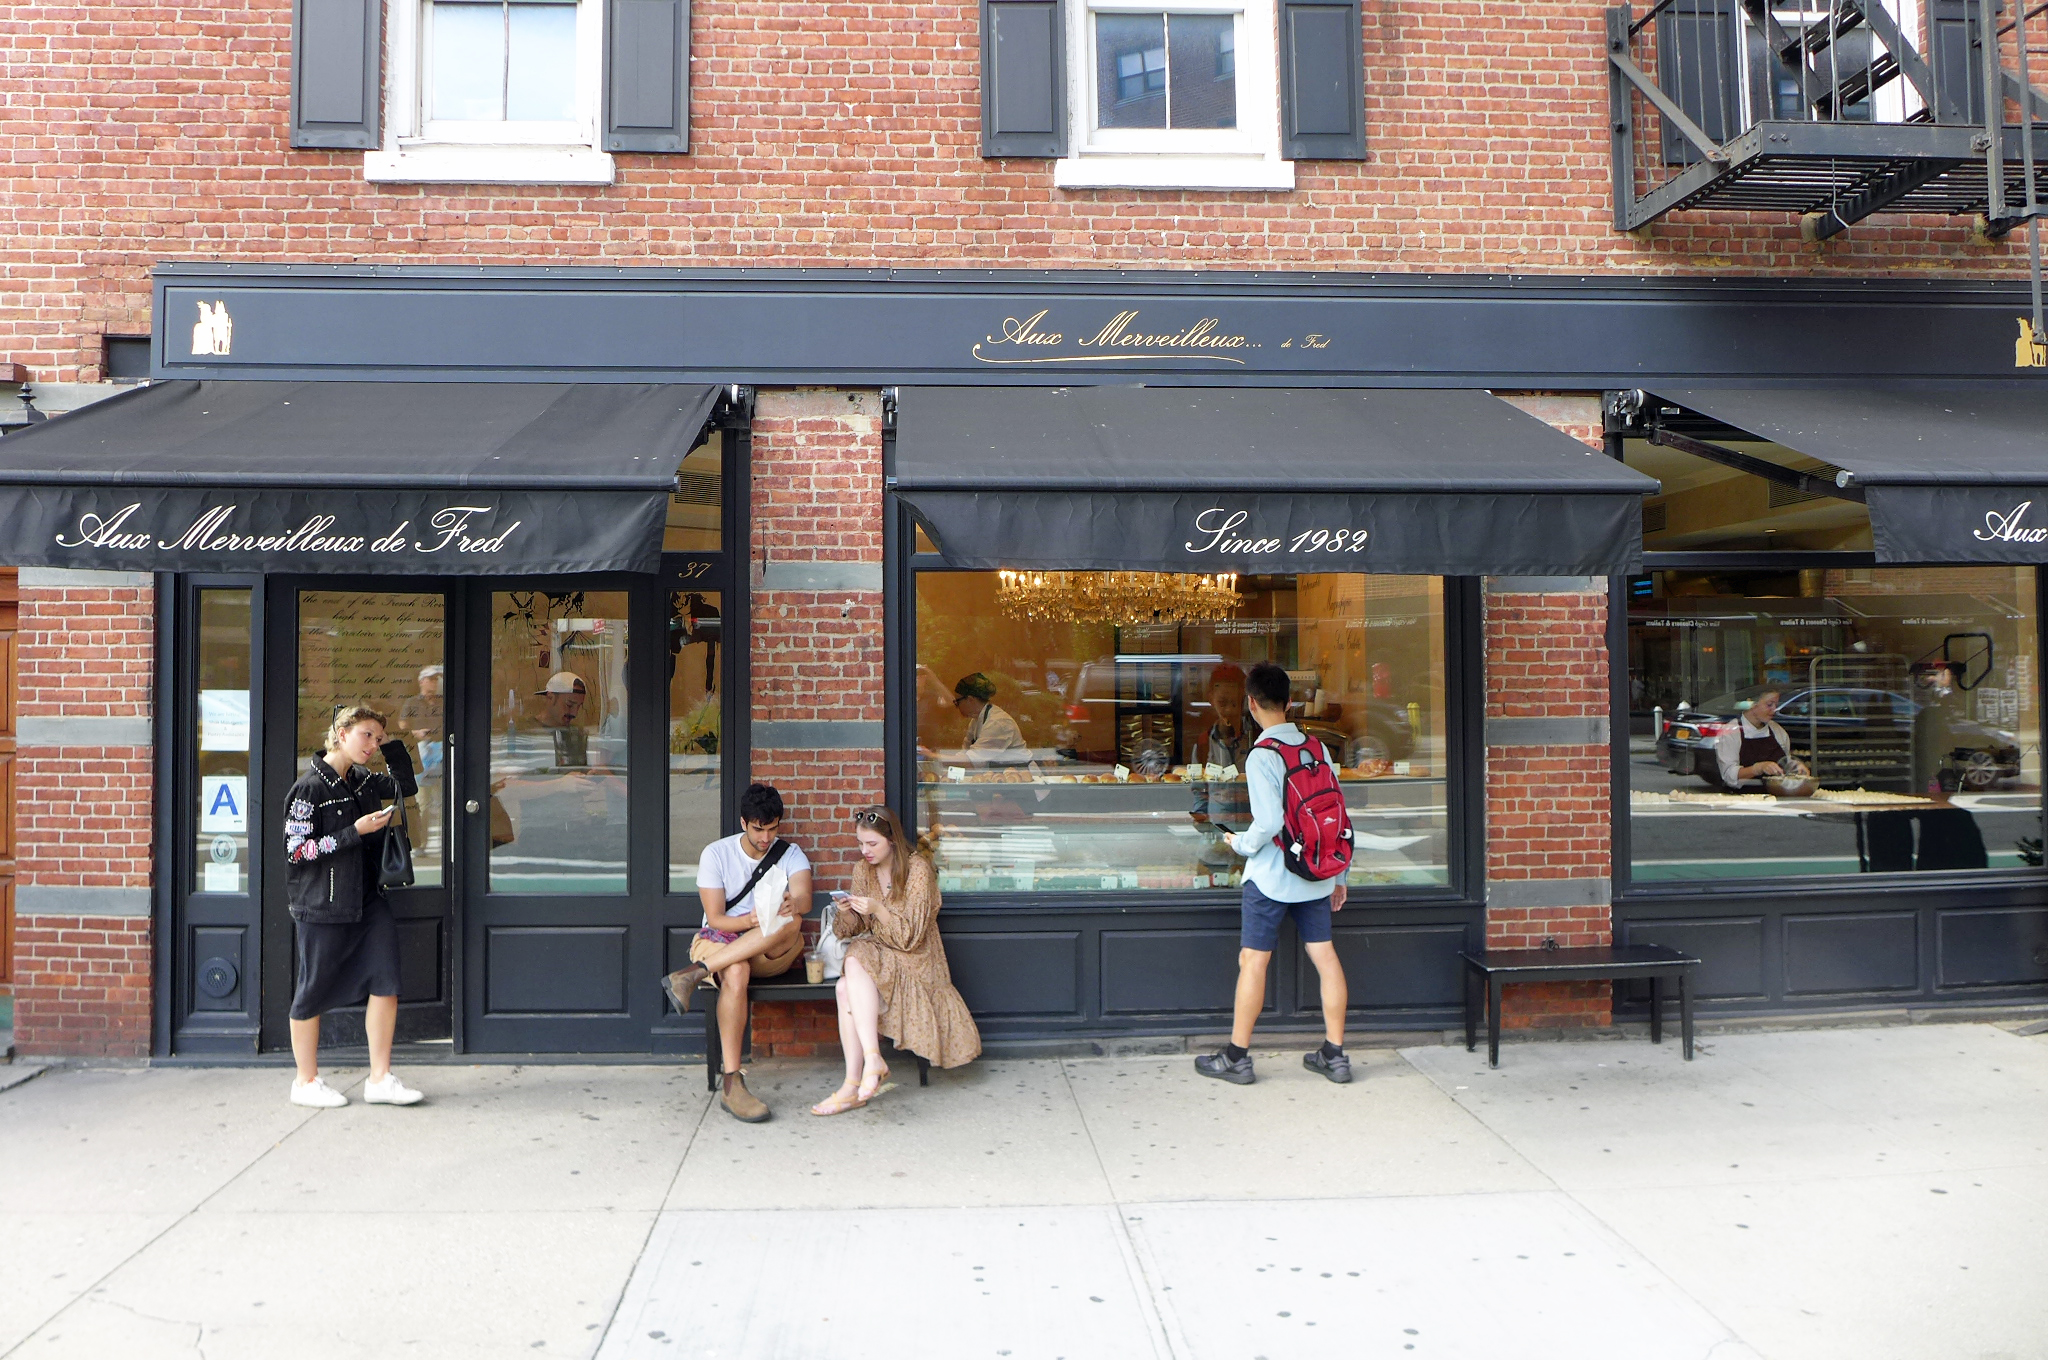 A wide storefront of brick with a window displaying pastries and people milling around outside...